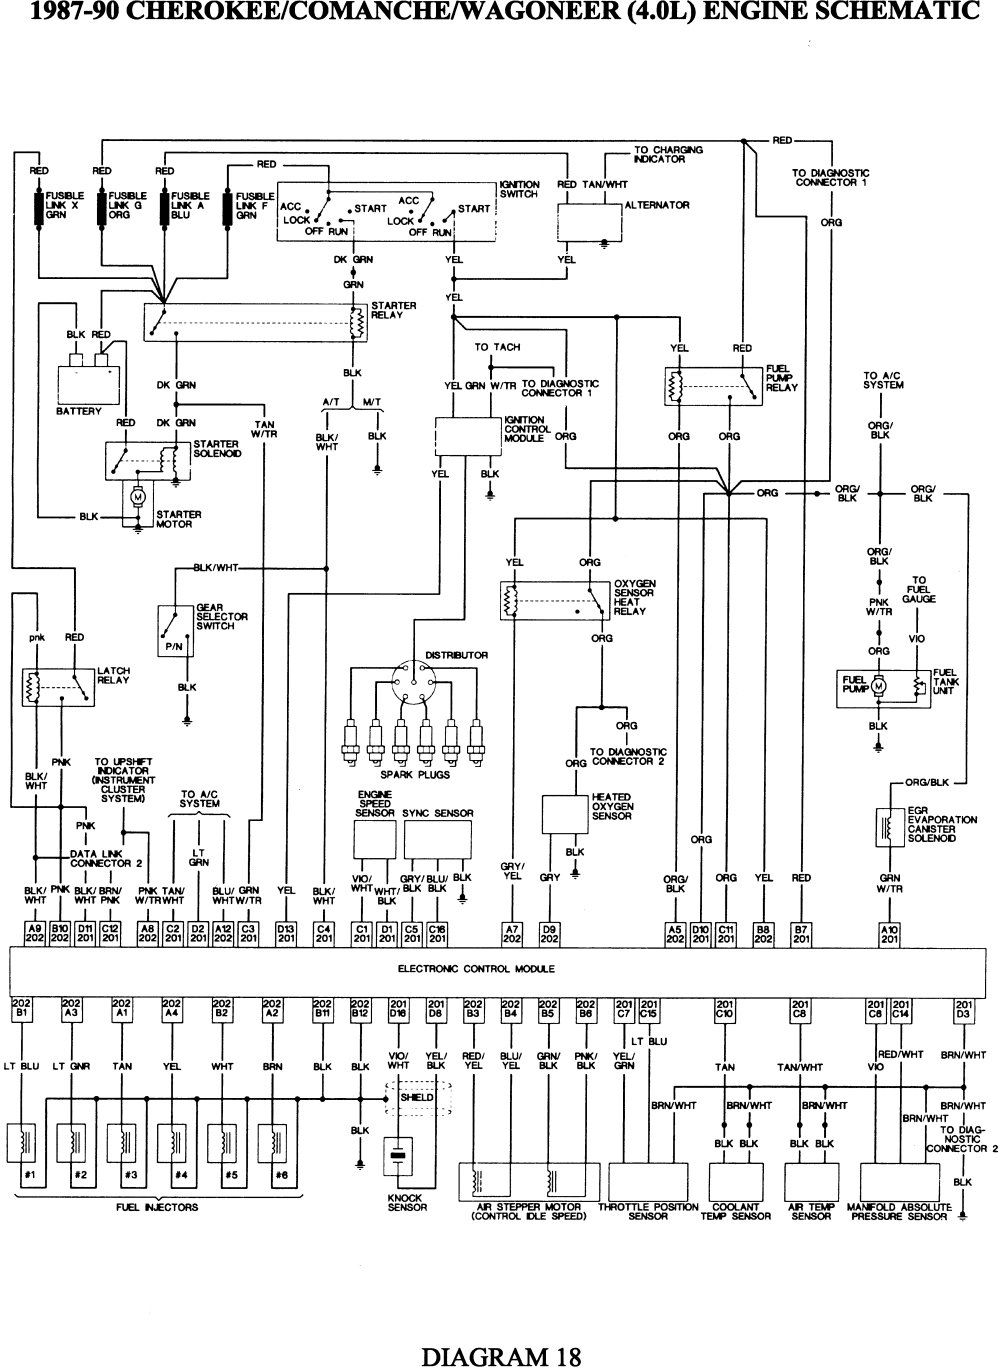 hight resolution of 1997 jeep wrangler electrical diagram wiring diagram user 1997 jeep wrangler alternator diagram on jeep wrangler electrical